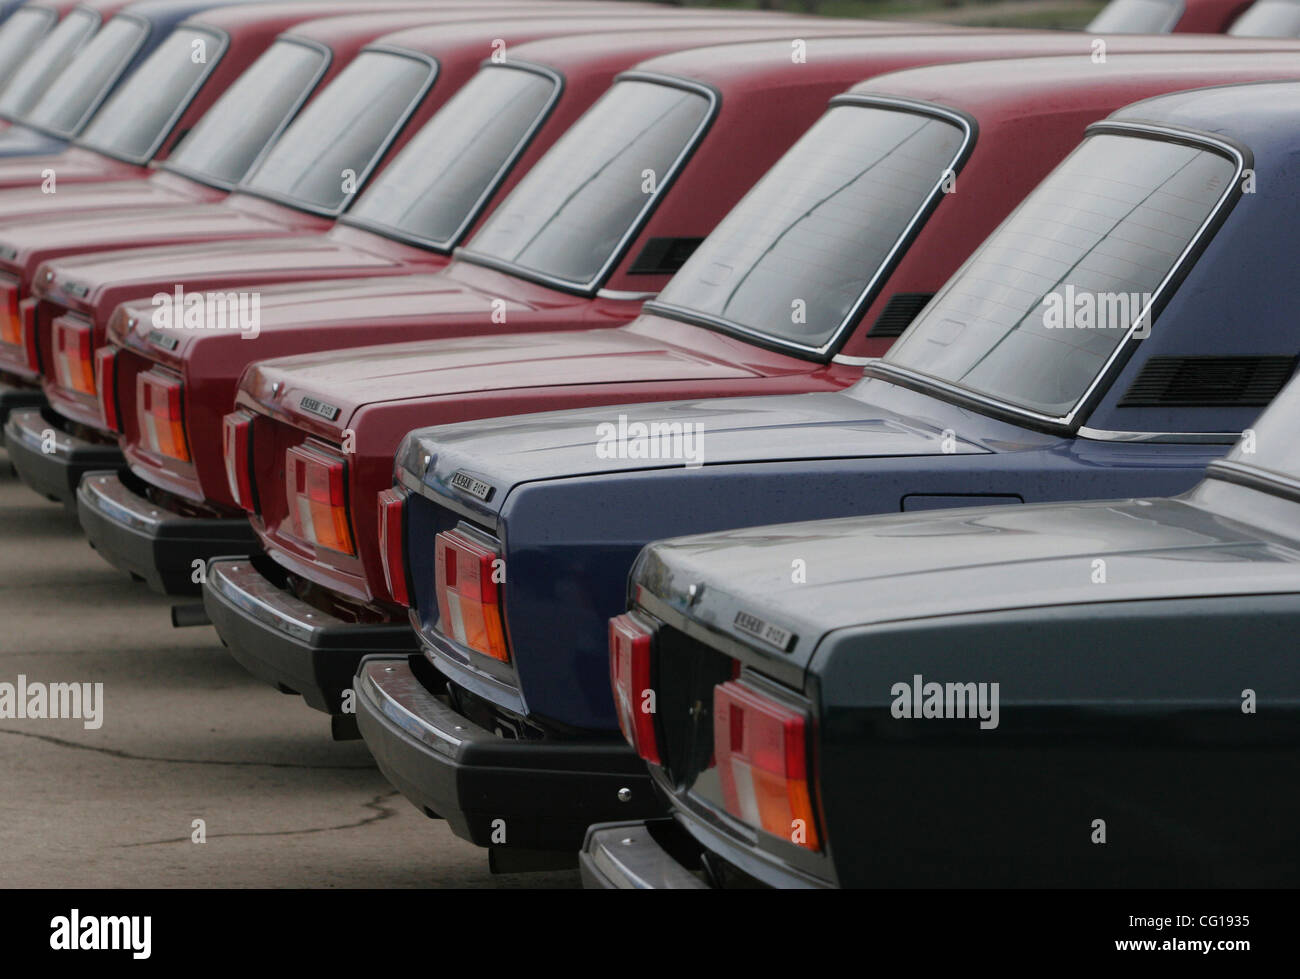 Brand new russian cars Lada ready for sale. Lada (Zhiguli) is an ...